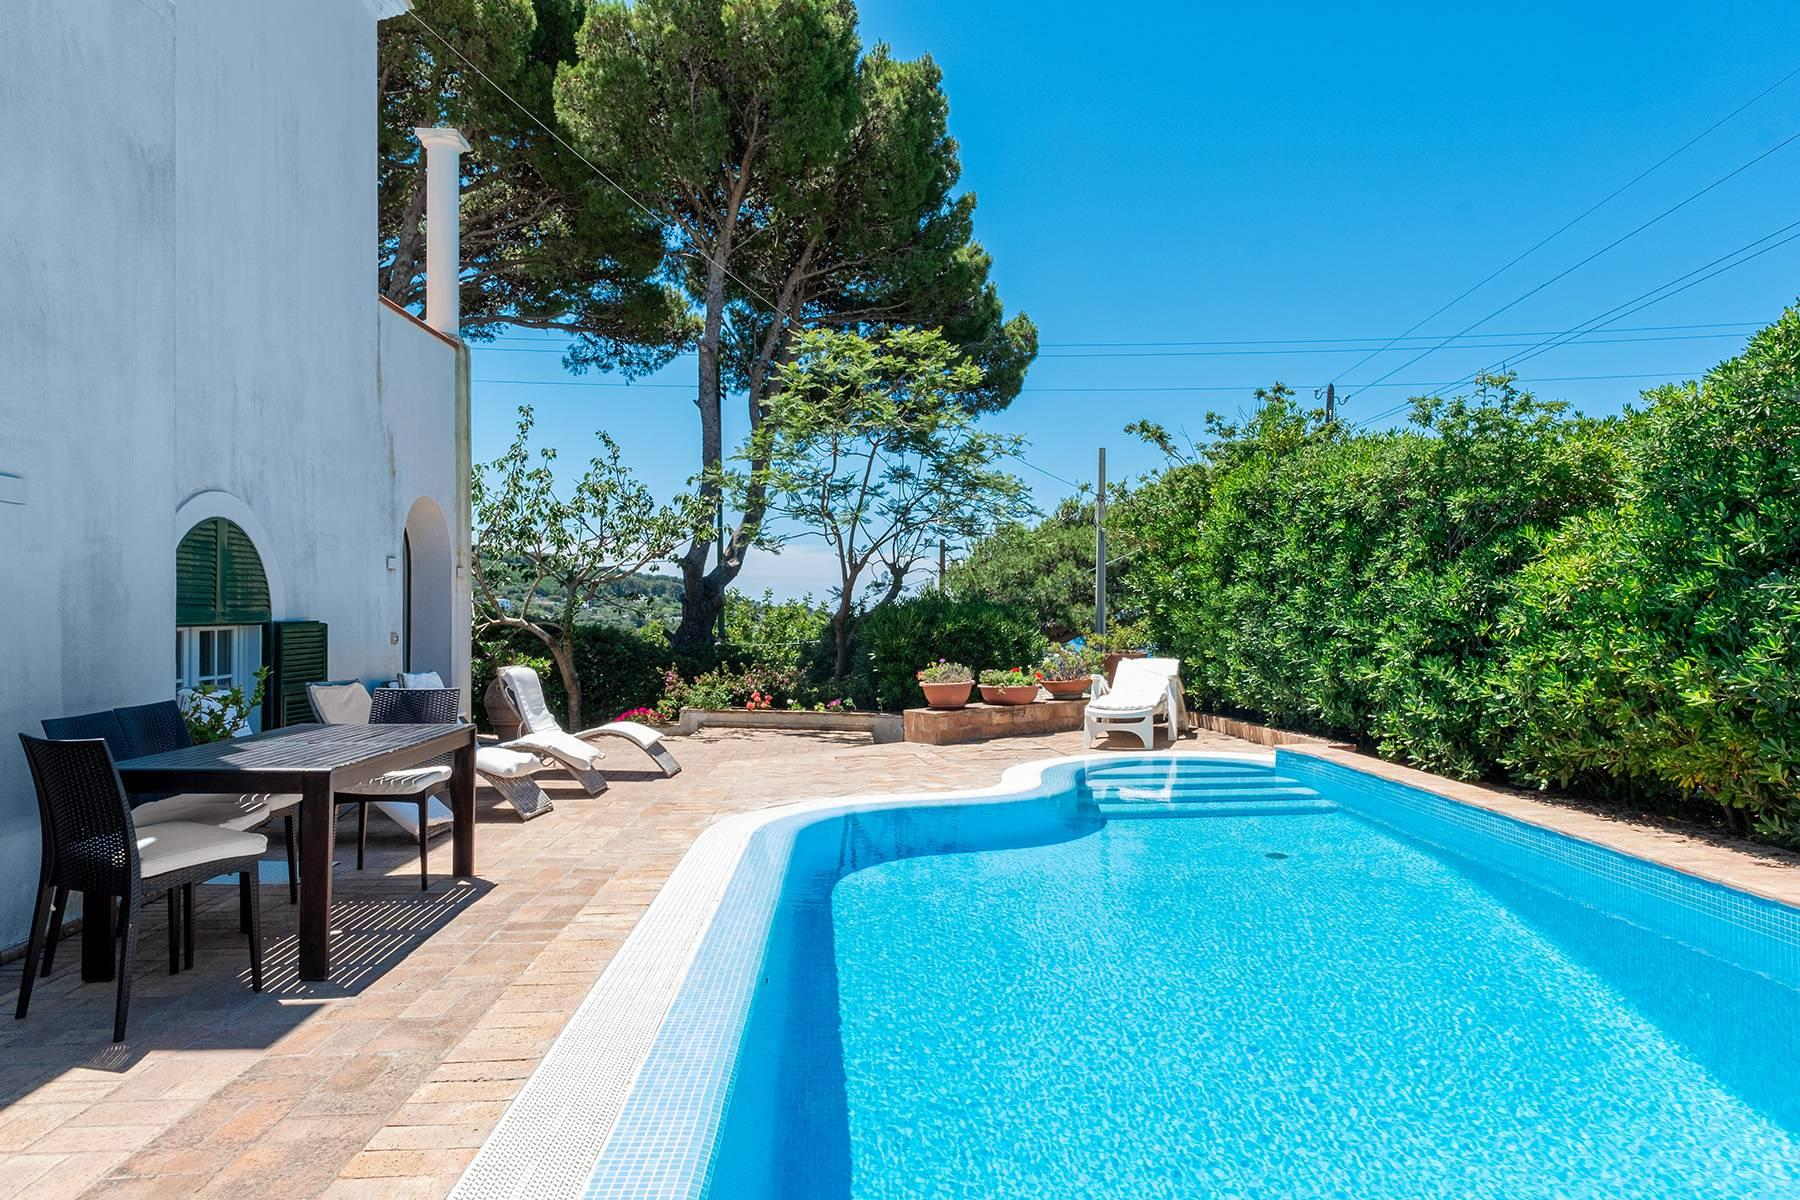 Charming villa with swimming pool in Anacapri - 1